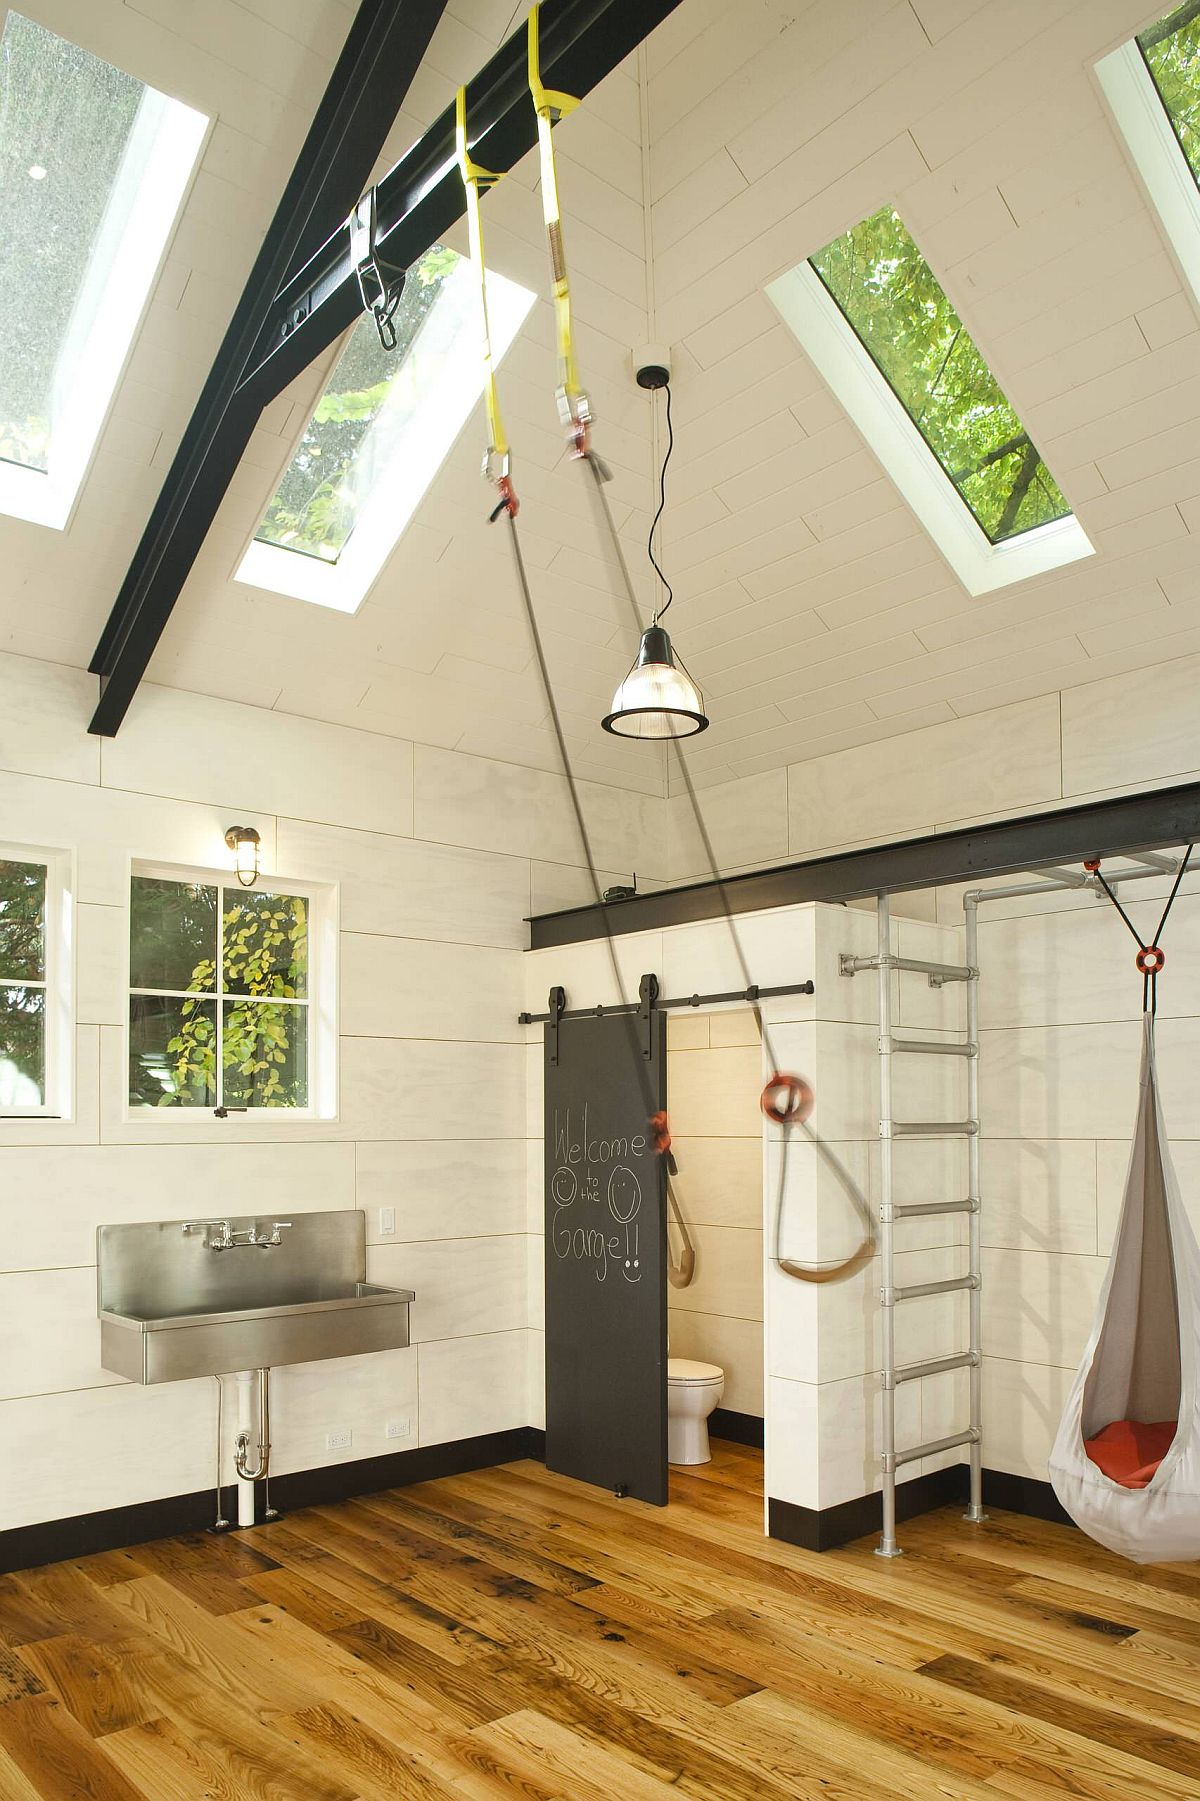 Spacious-industrial-style-kids-room-with-monkey-bars-ropes-and-swings-promotes-activity-18155